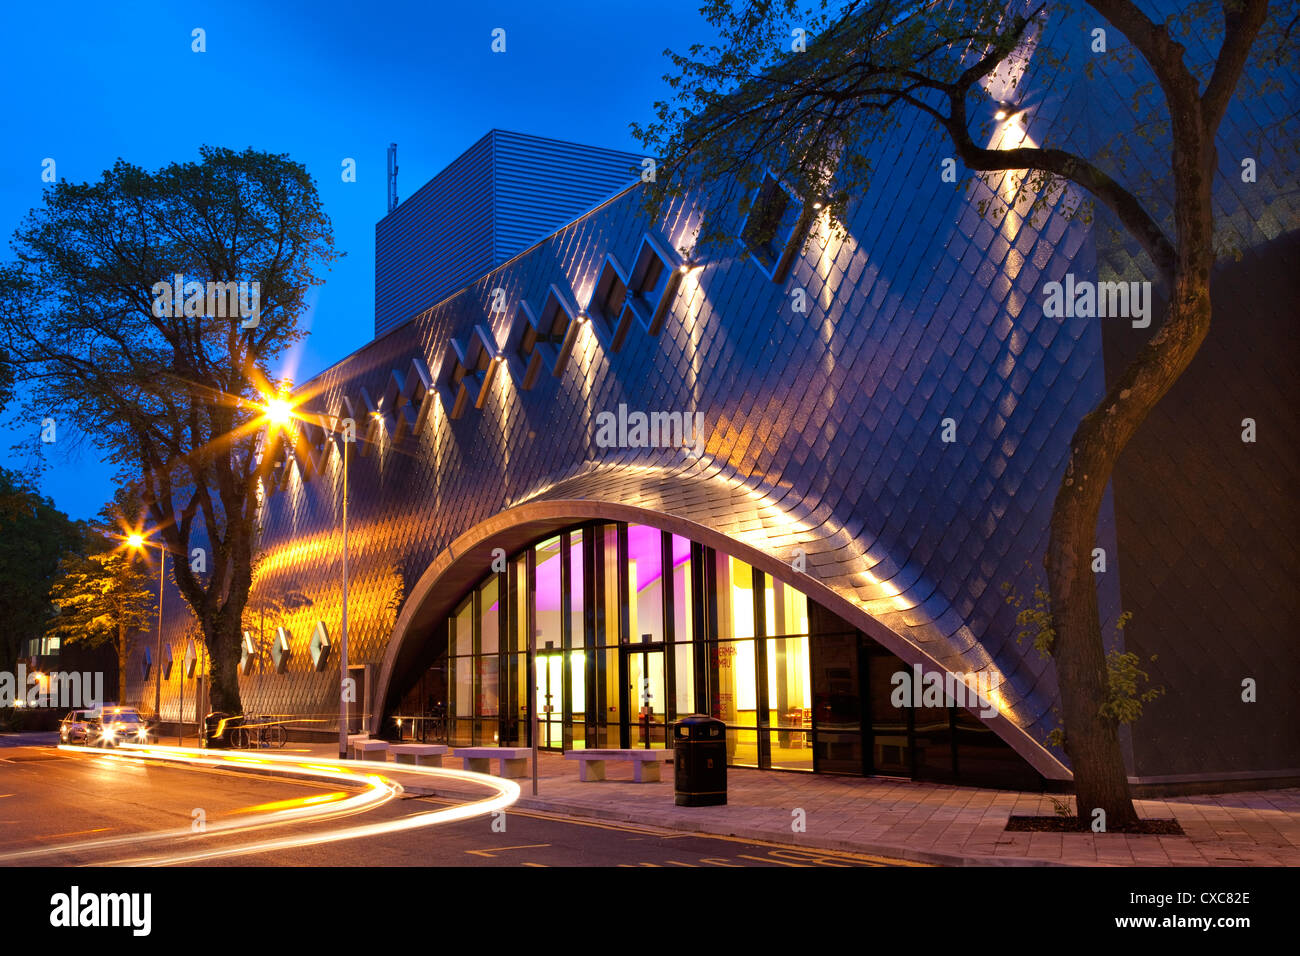 Sherman Theatre, Cardiff, South Wales, Wales, United Kingdom, Europe - Stock Image